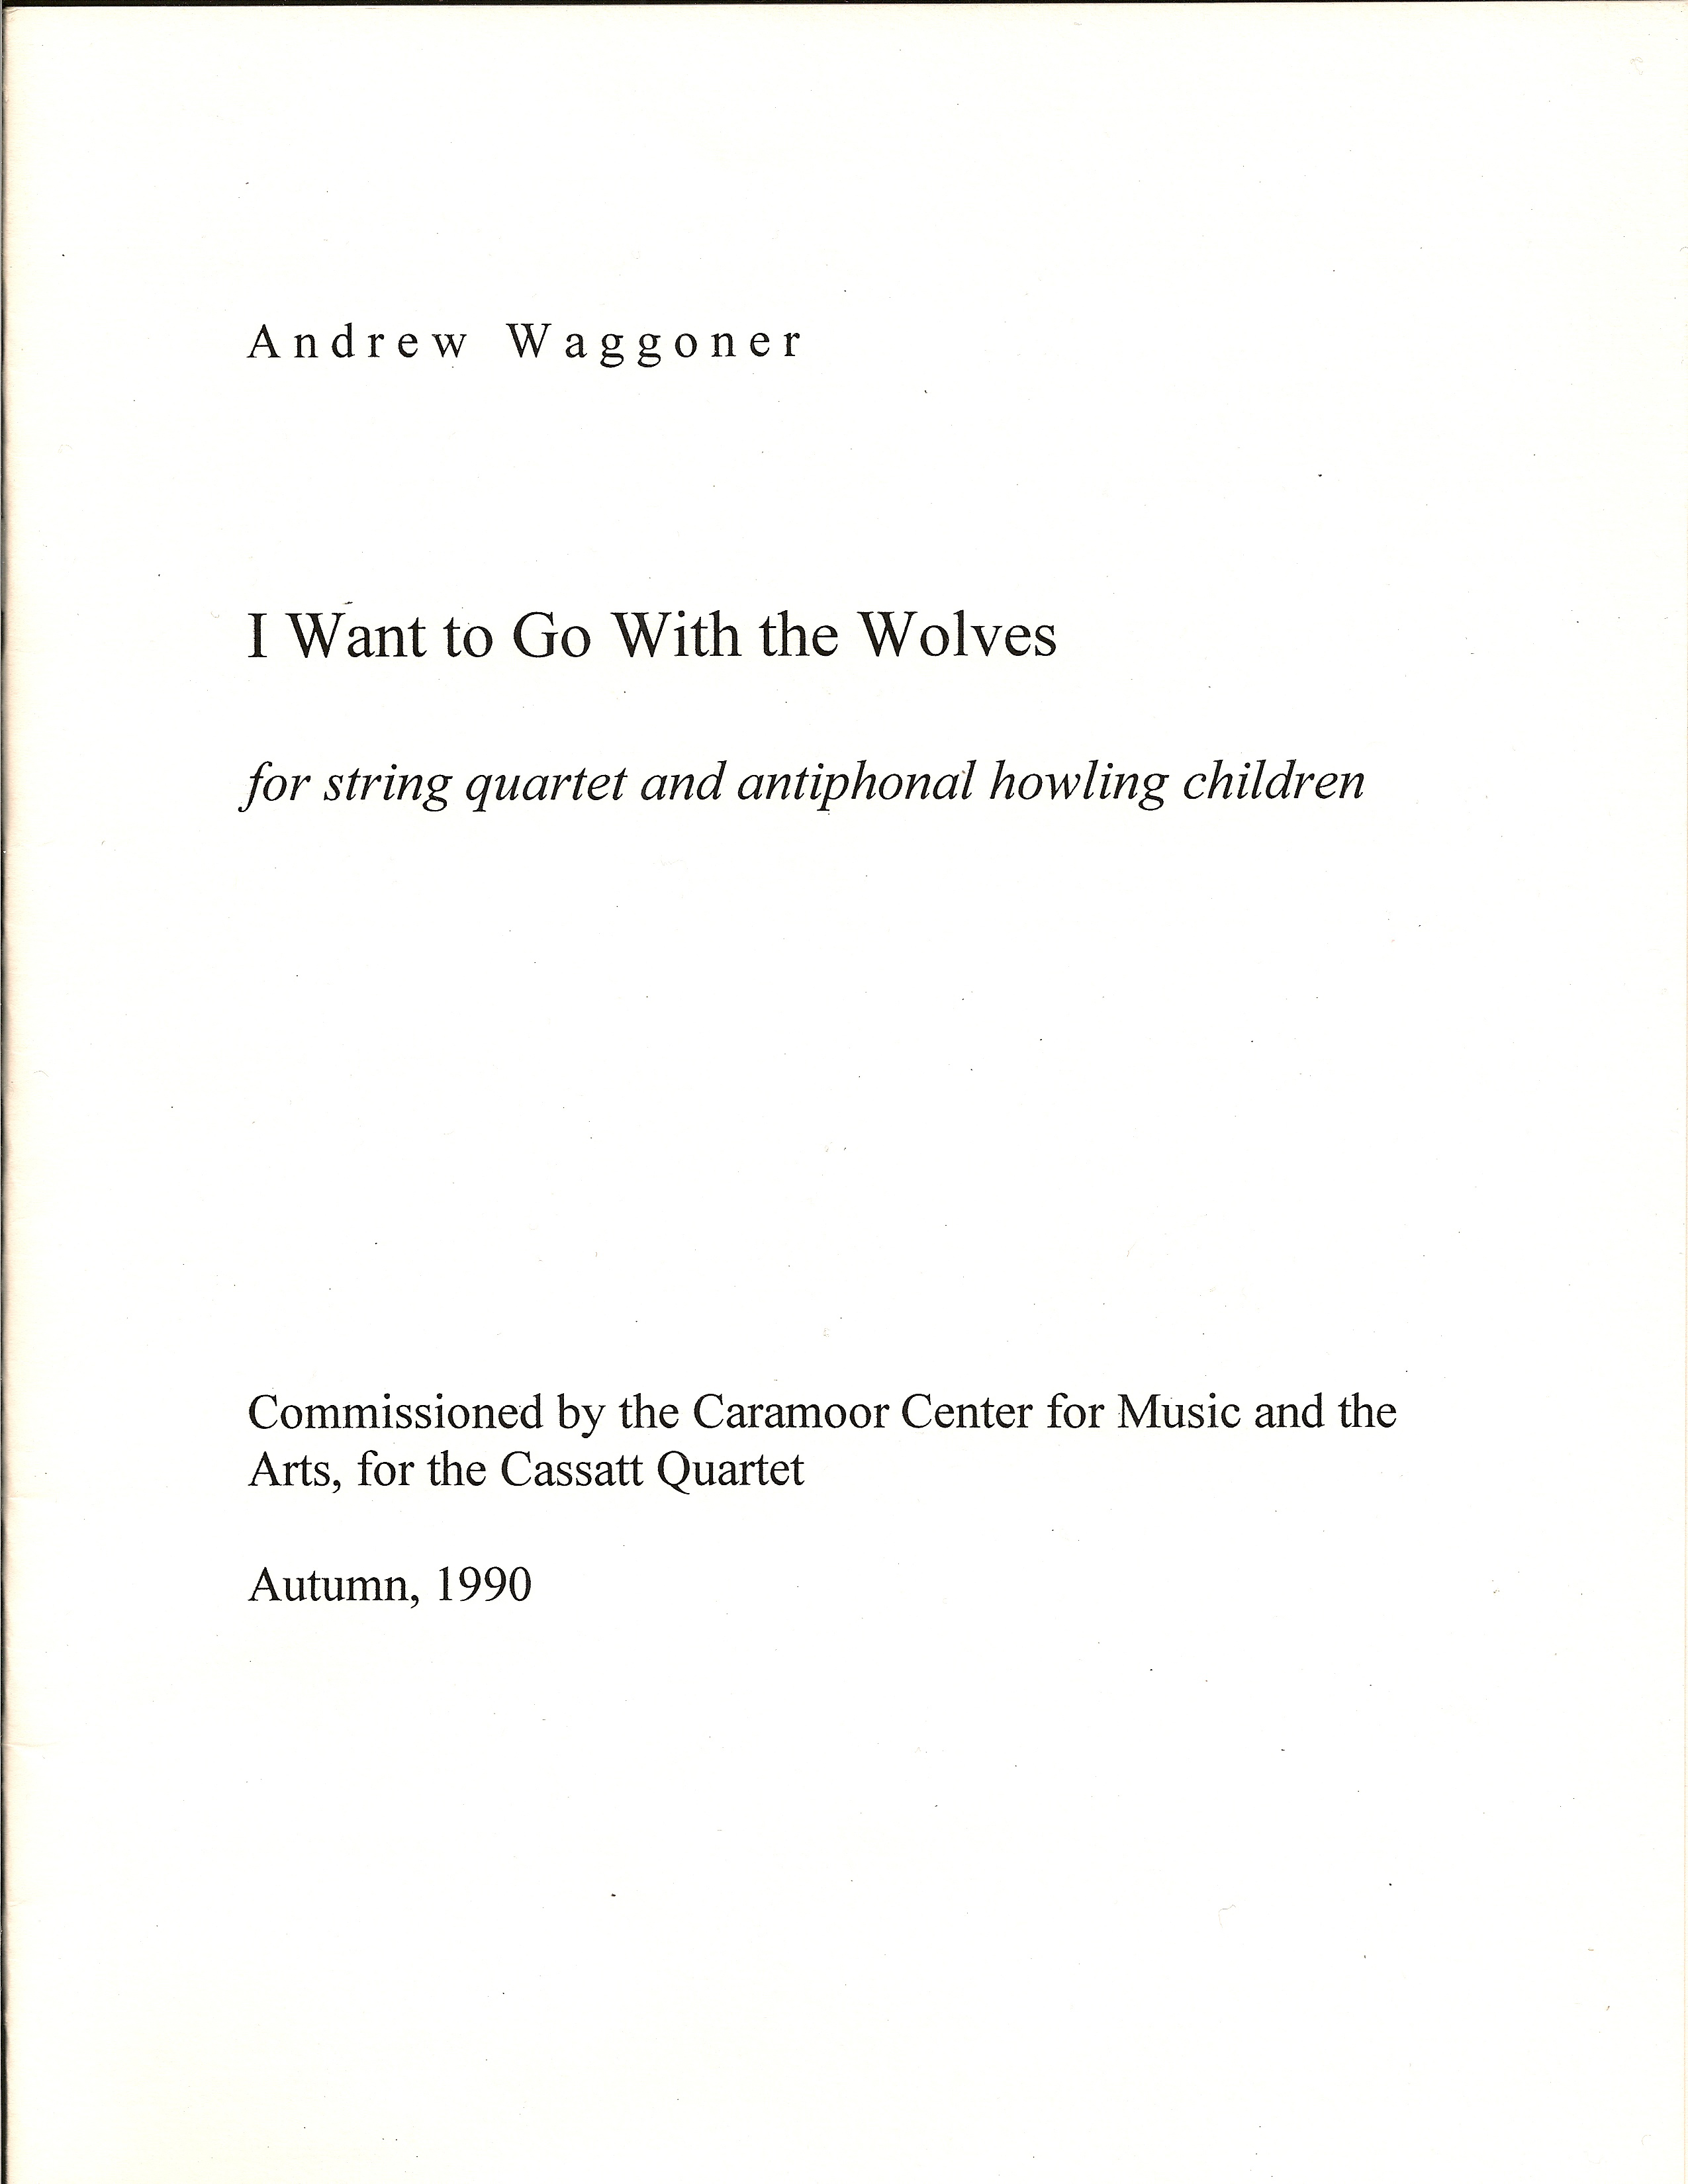 I Want to Go With the Wolves for String Quartet and antiphonal howling children